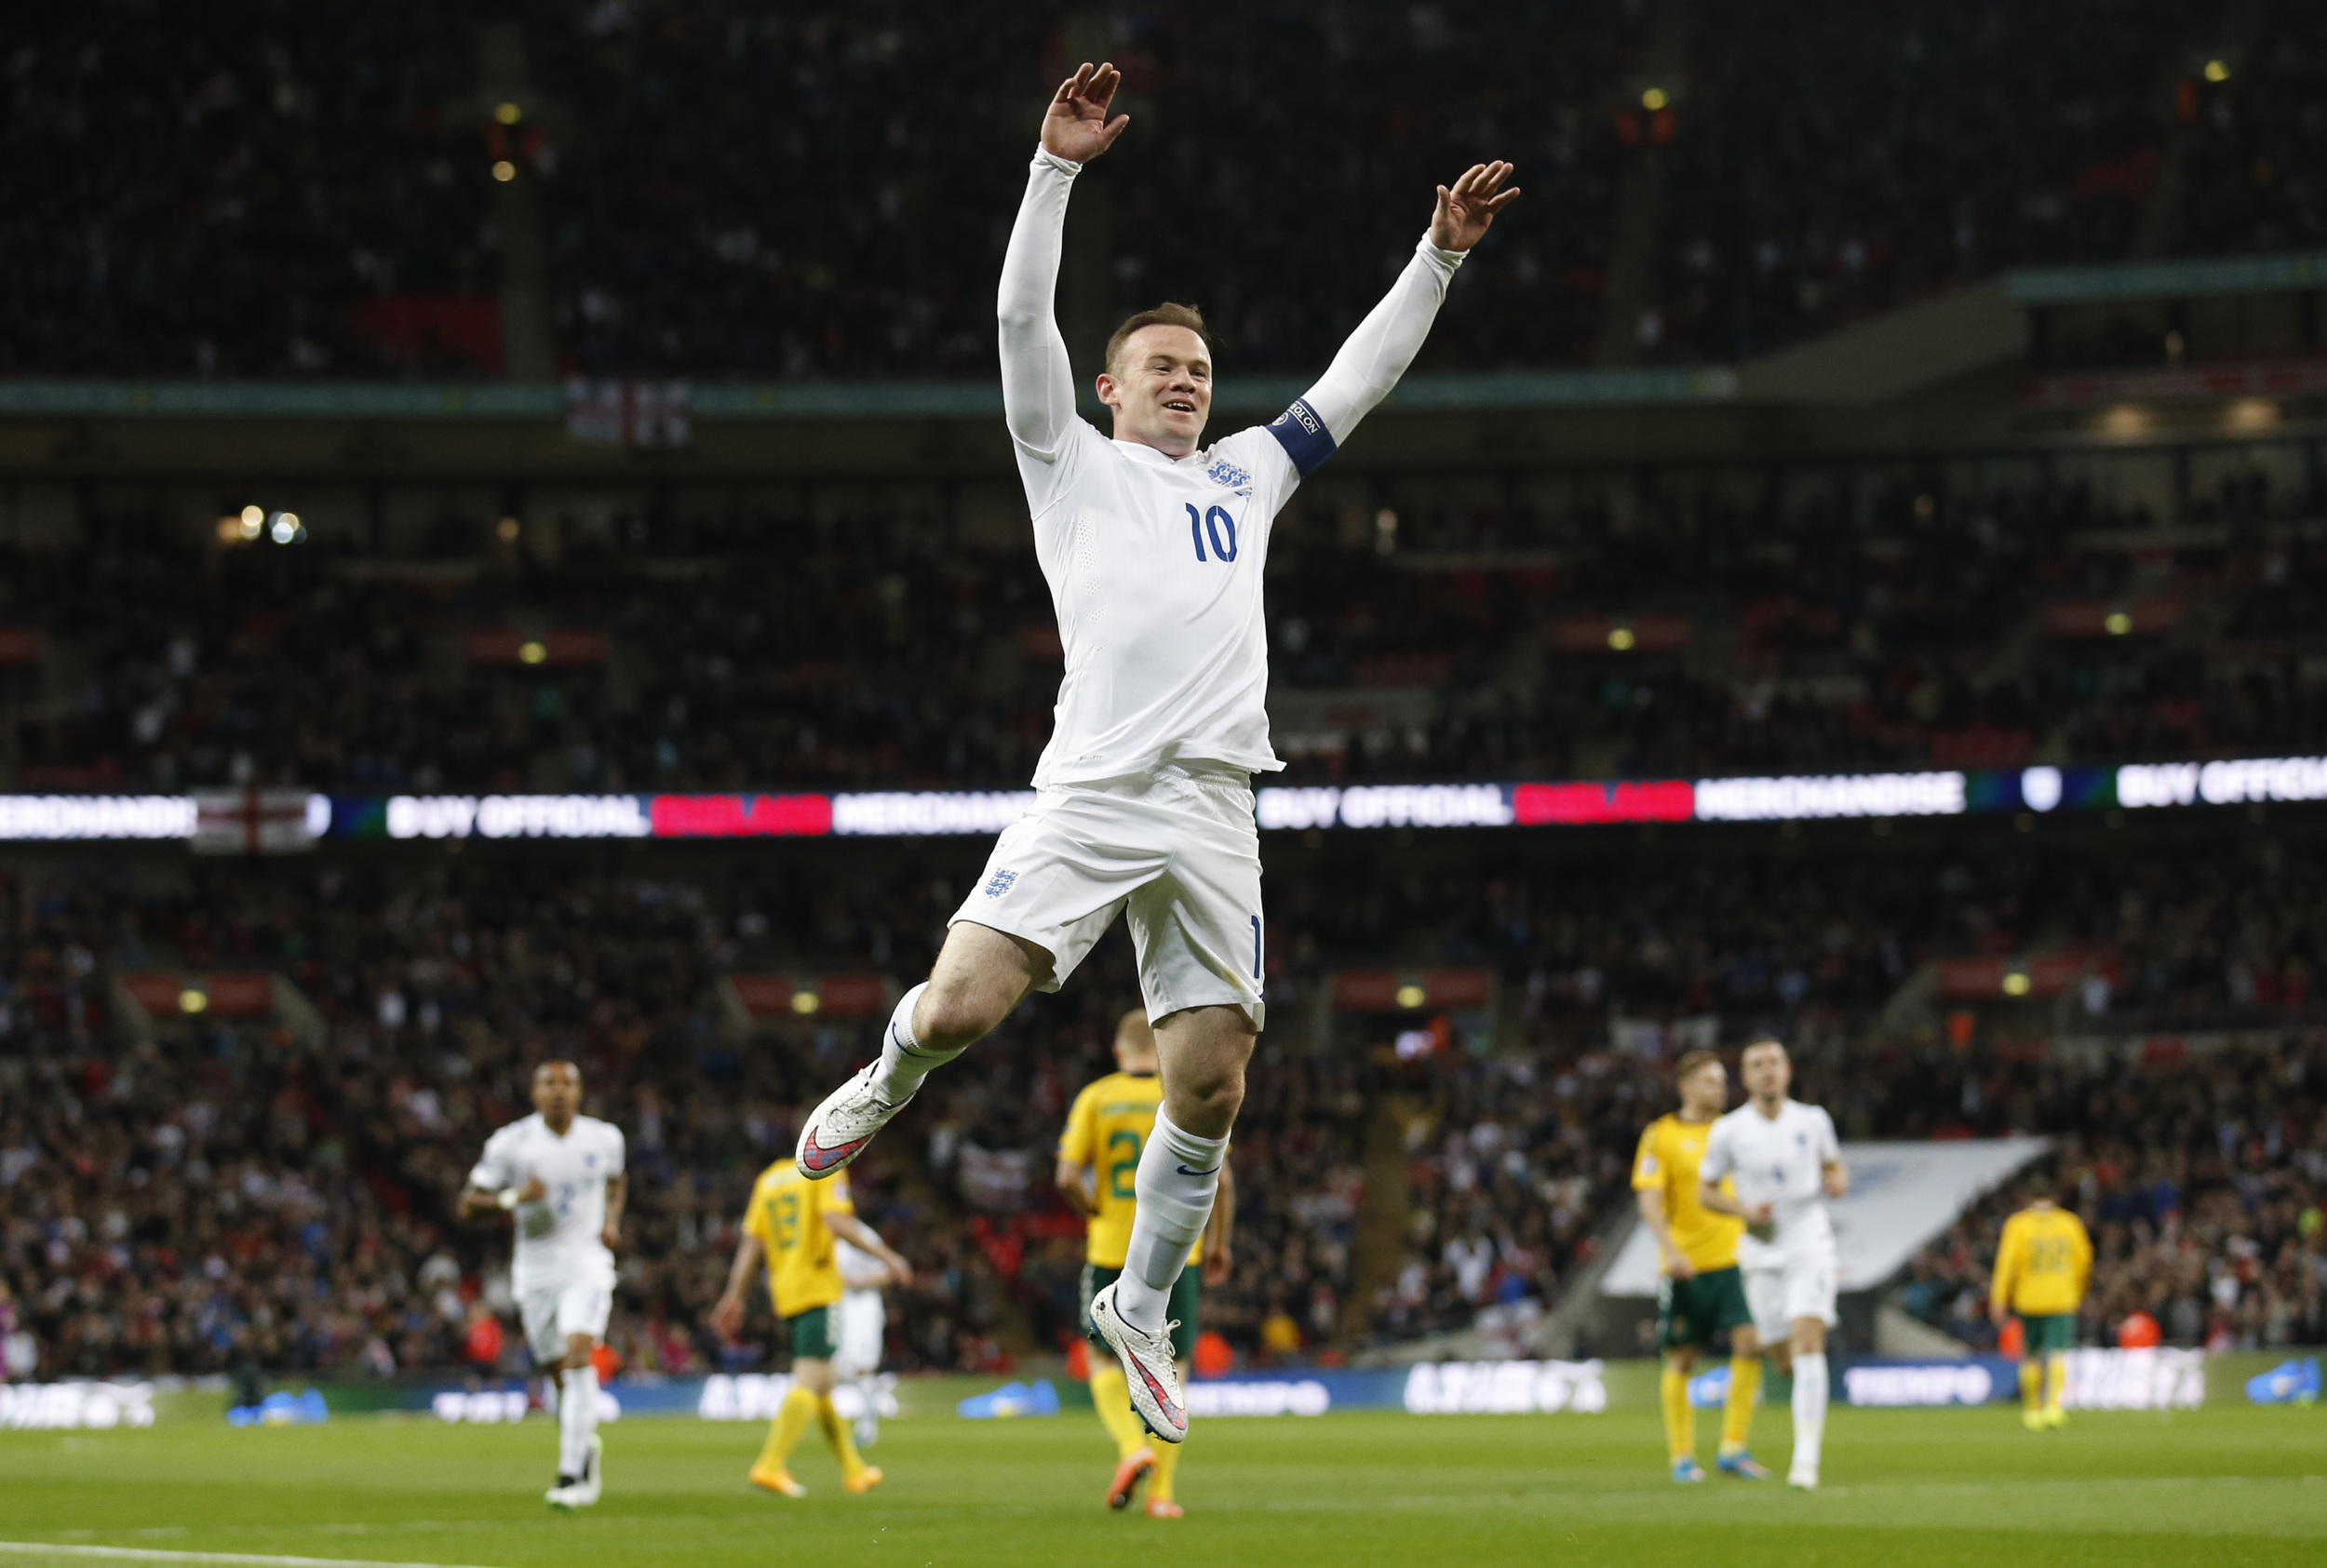 Wayne Rooney, captain of England, celebrates scoring against Lithuania in the European Championship qualifiers at Wembley Stadium. Rooney, as instrumental as he may be, is not guranteed a starring role later this year in France. Image supplied by Action Images /Carl Recine.